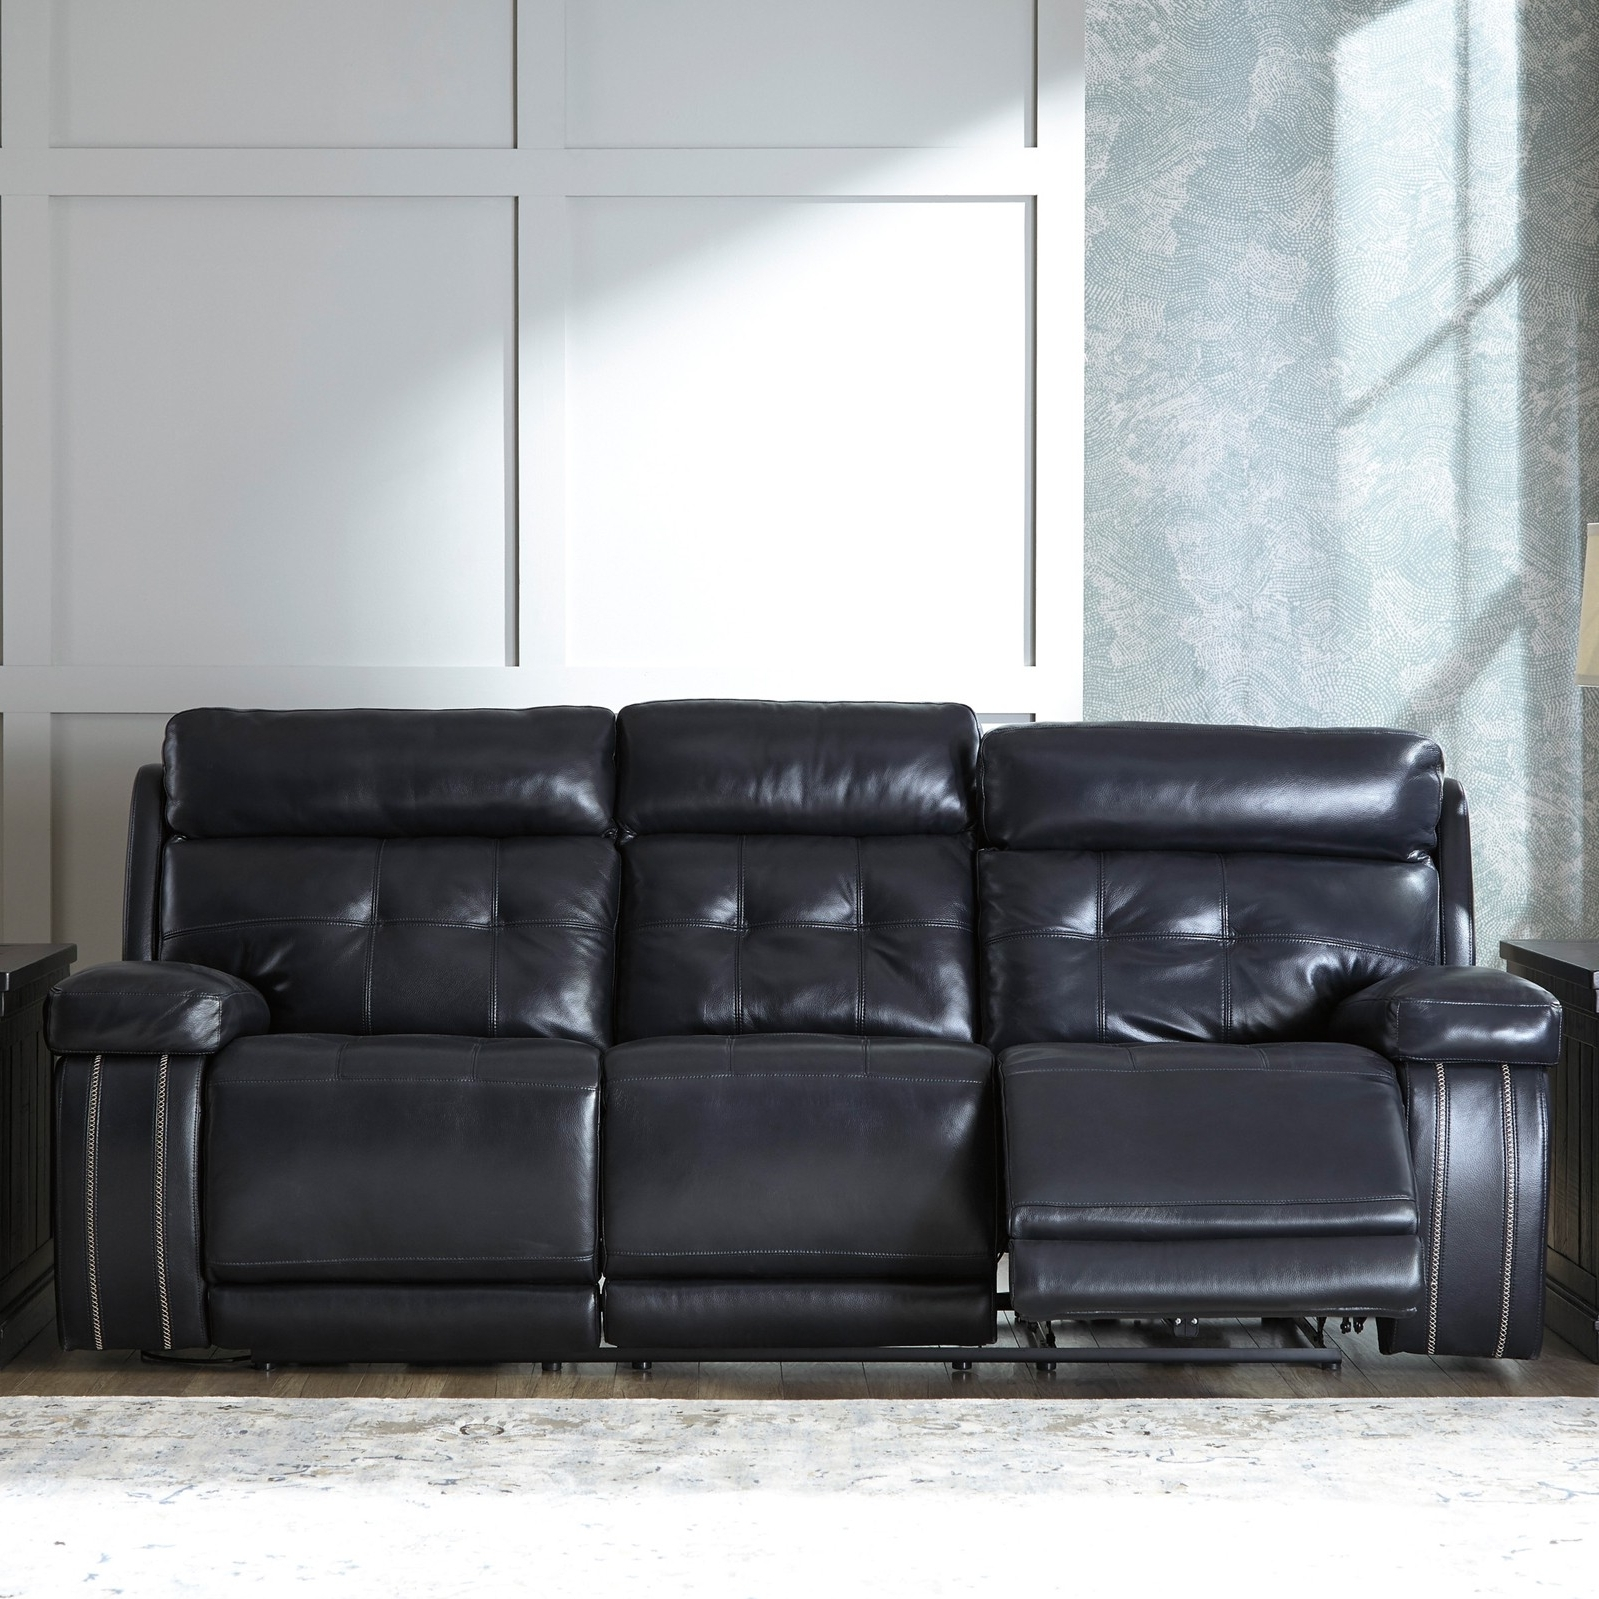 Graford Navy Power Recliner Sofa With Adjustable Headrest For Regarding Most Current Recliner Sofas (View 6 of 17)